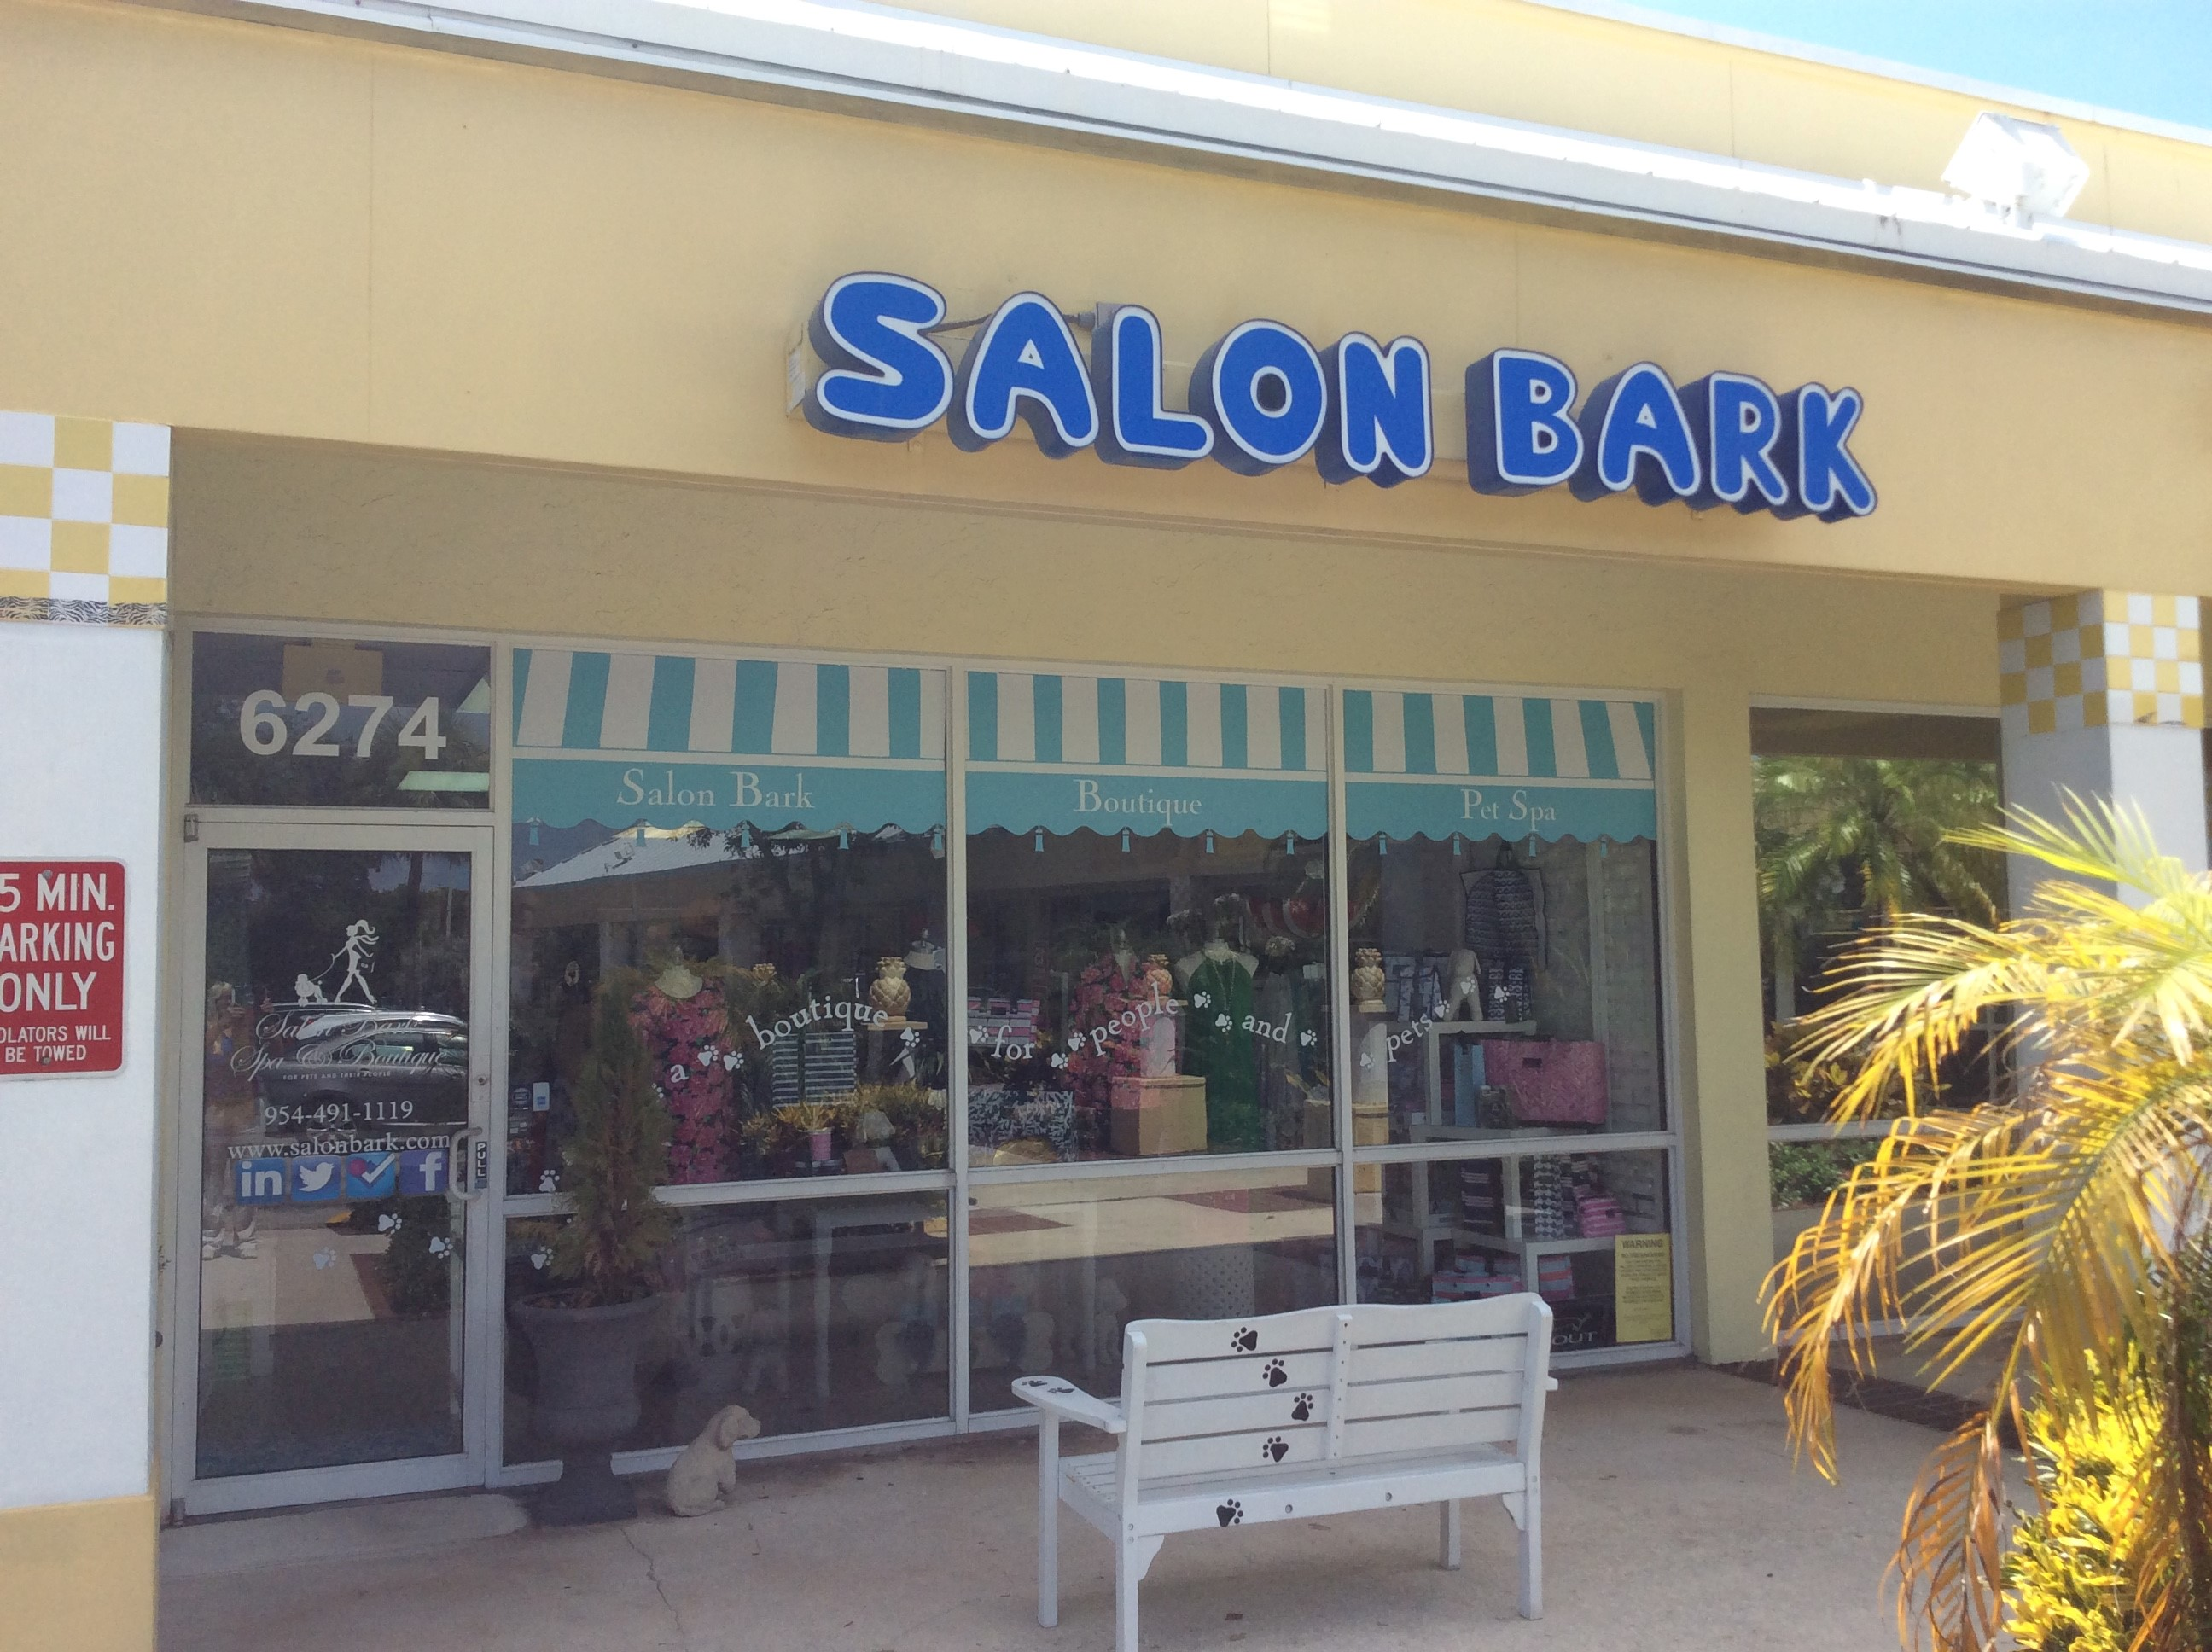 Salon bark pet salon fort lauderdale fl pet supplies for A family pet salon